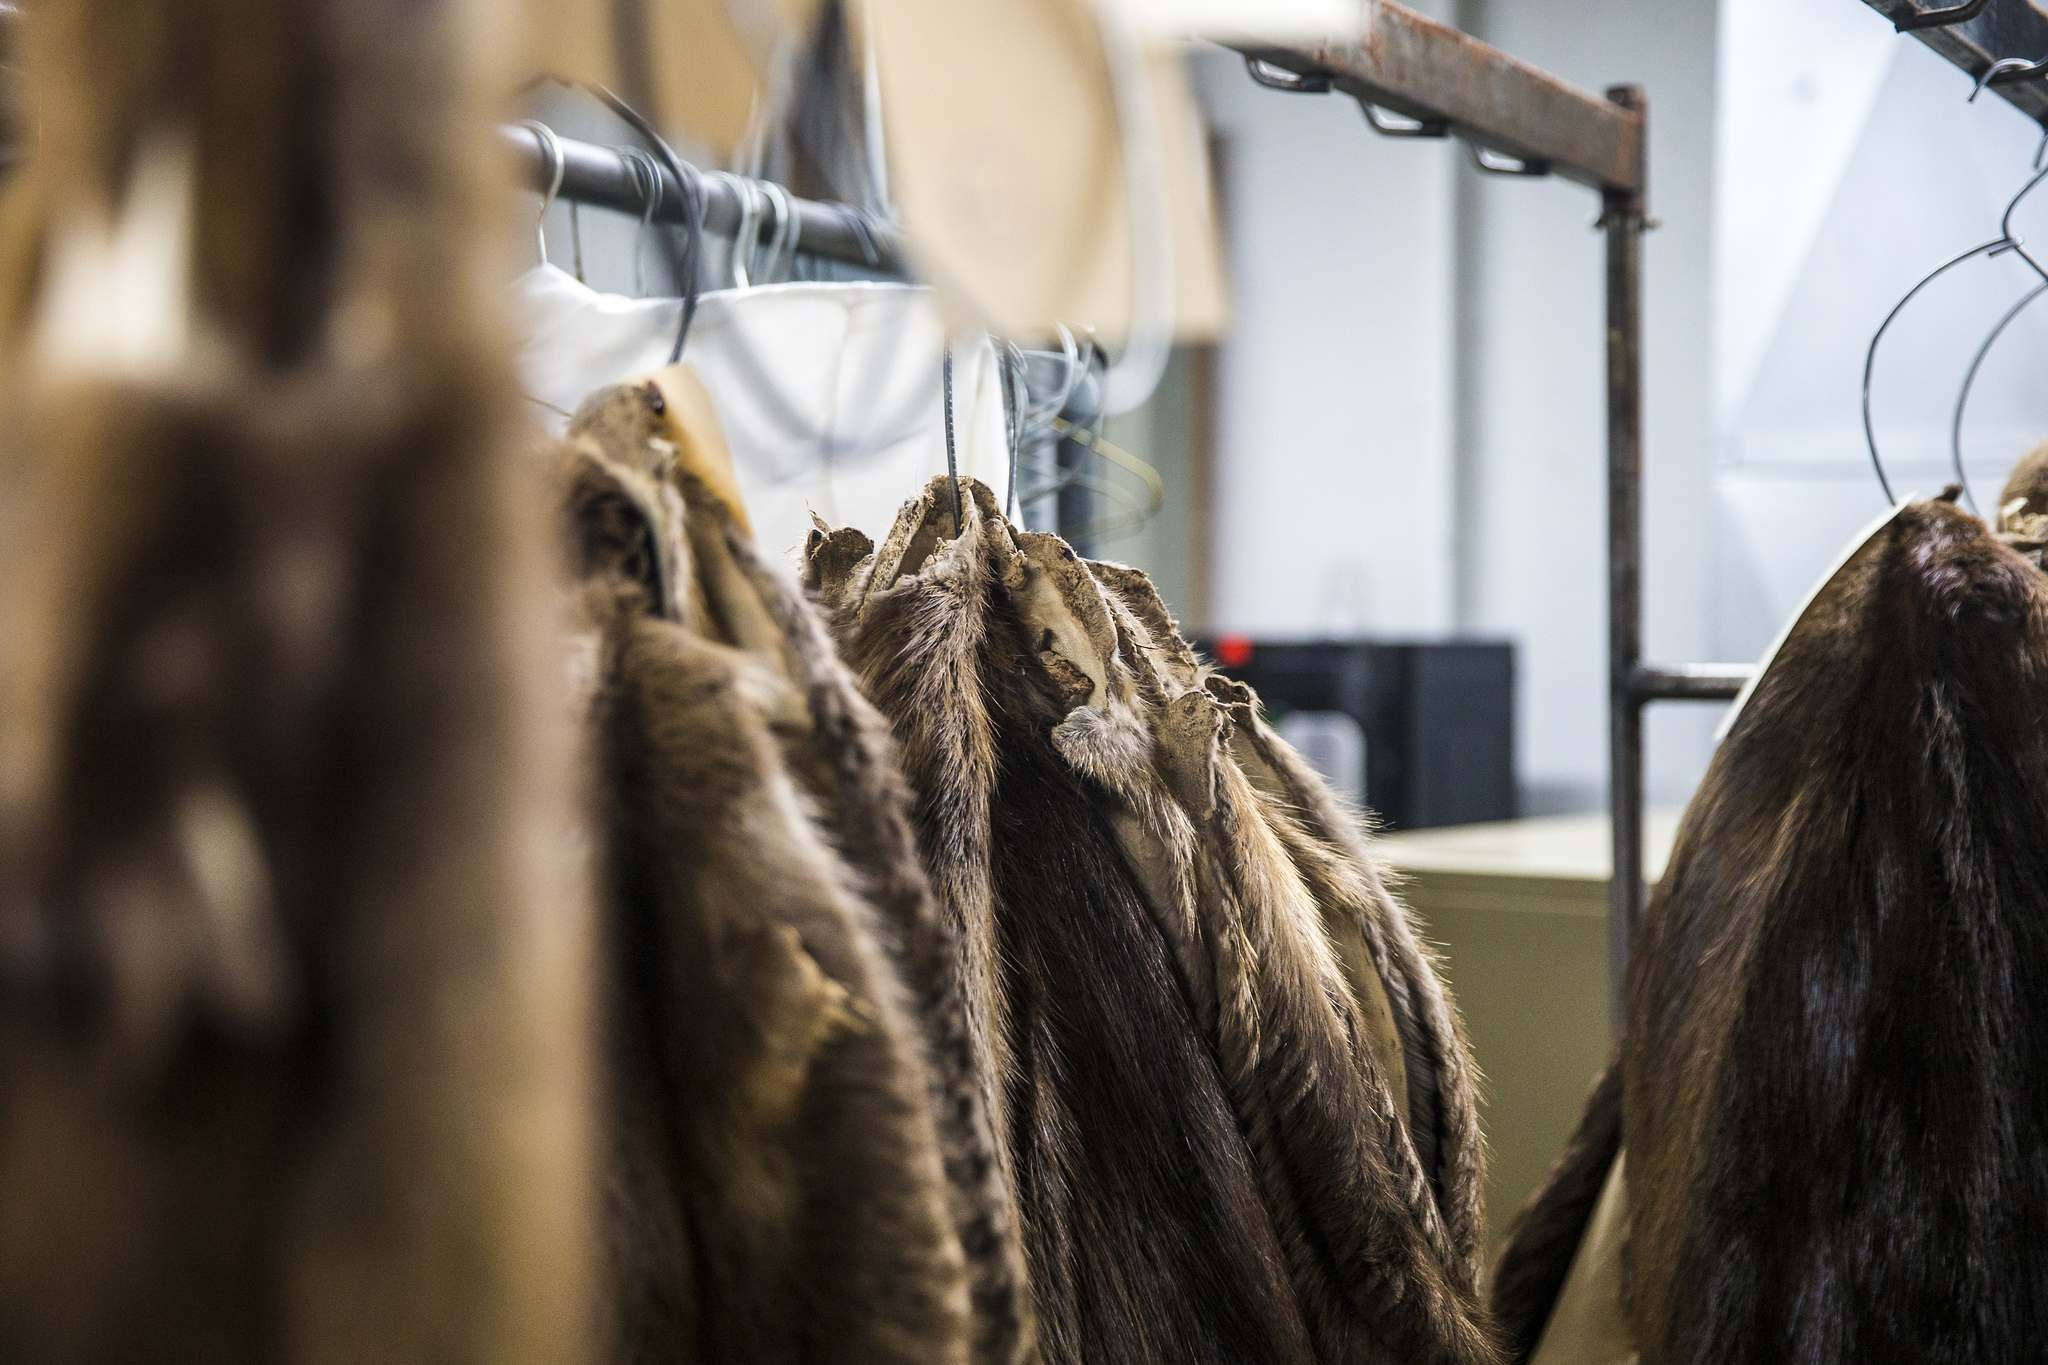 Cured beaver furs at the Fur Harvesters Auction. (Mikaela MacKenzie / Winnipeg Free Press)